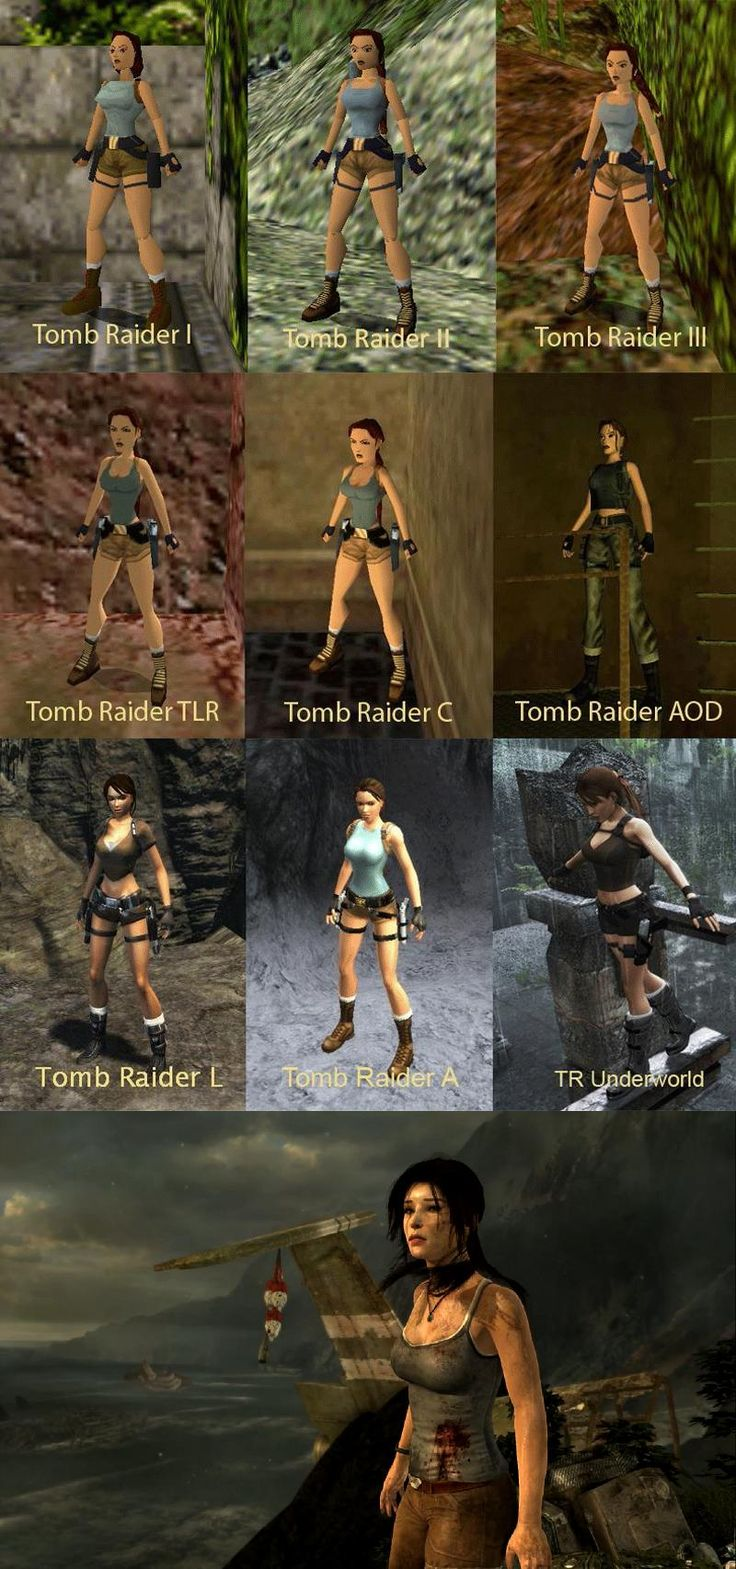 Tomb Raider's Lara Croft throughout the years... She has come a long way